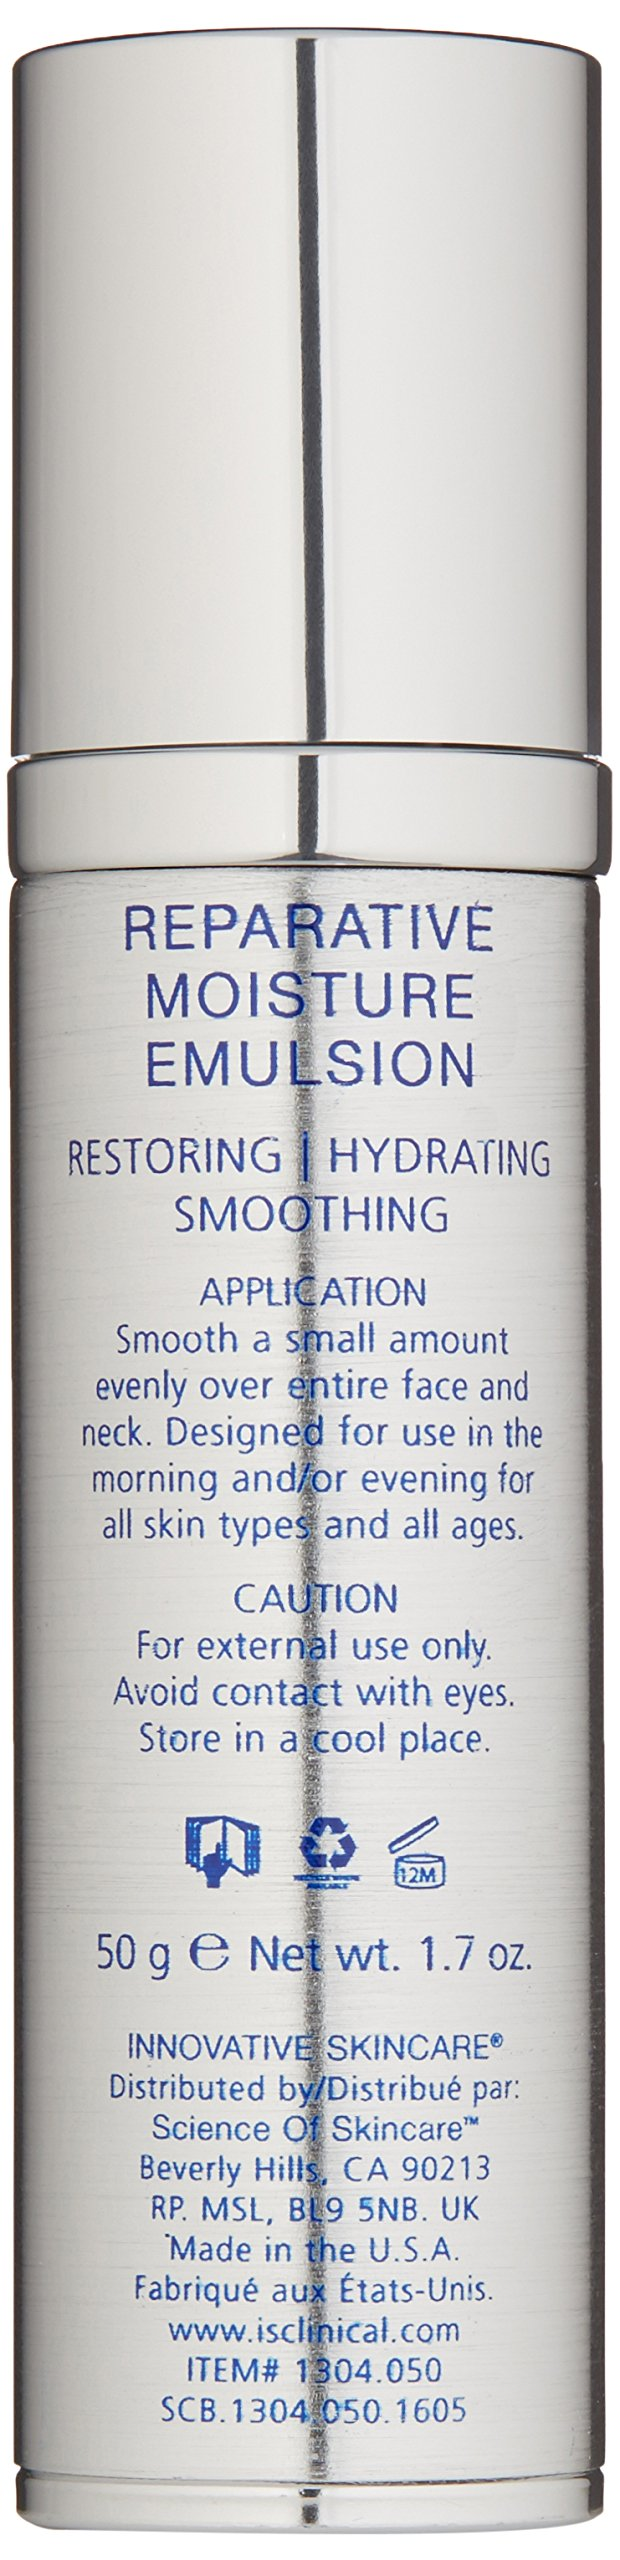 iS CLINICAL  Reparative Moisture Emulsion, 1.7  Oz by iS CLINICAL (Image #5)